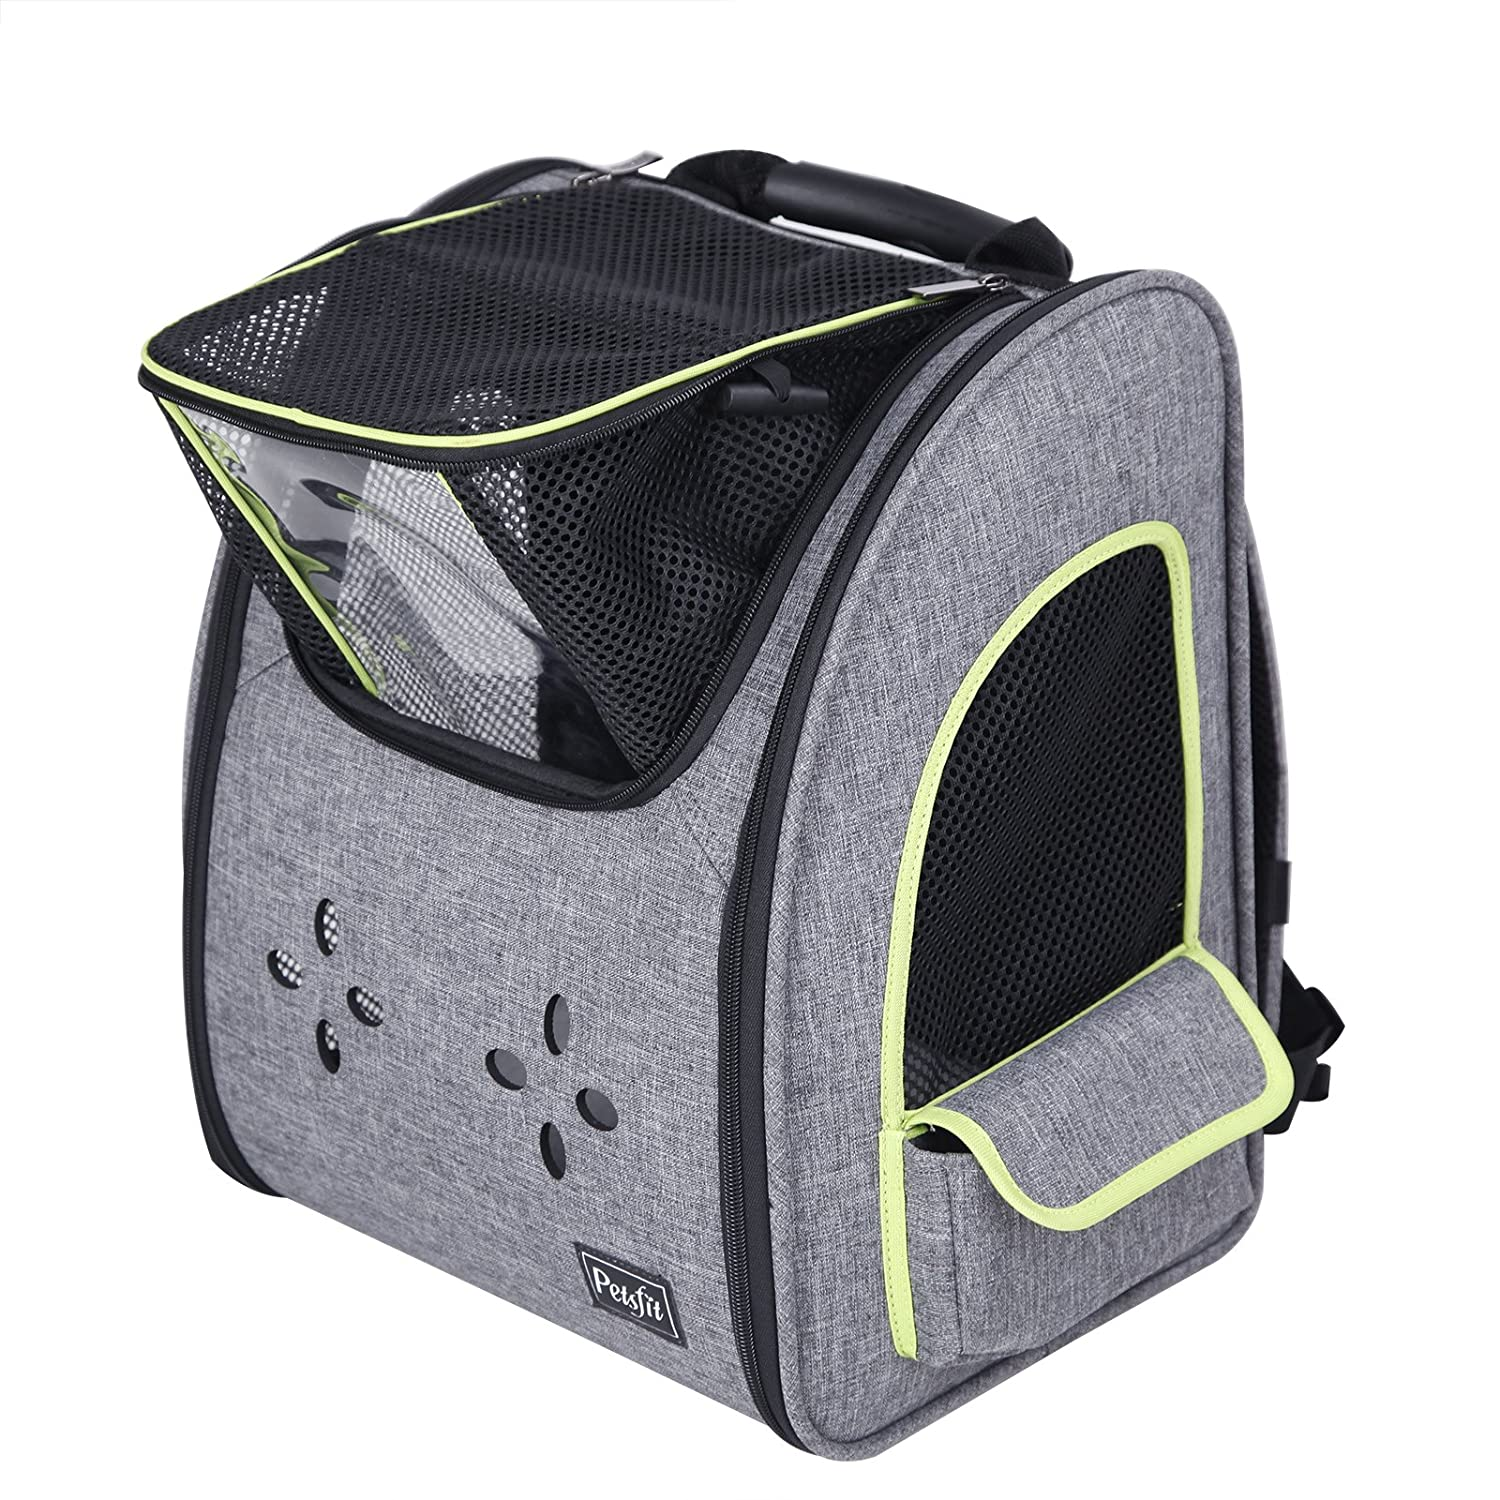 Petsfit Comfort Dogs Carriers Backpack, Fabric Pet Bag with Good Ventilation Go for A Walk Hiking Traveling and Cycling Ltd